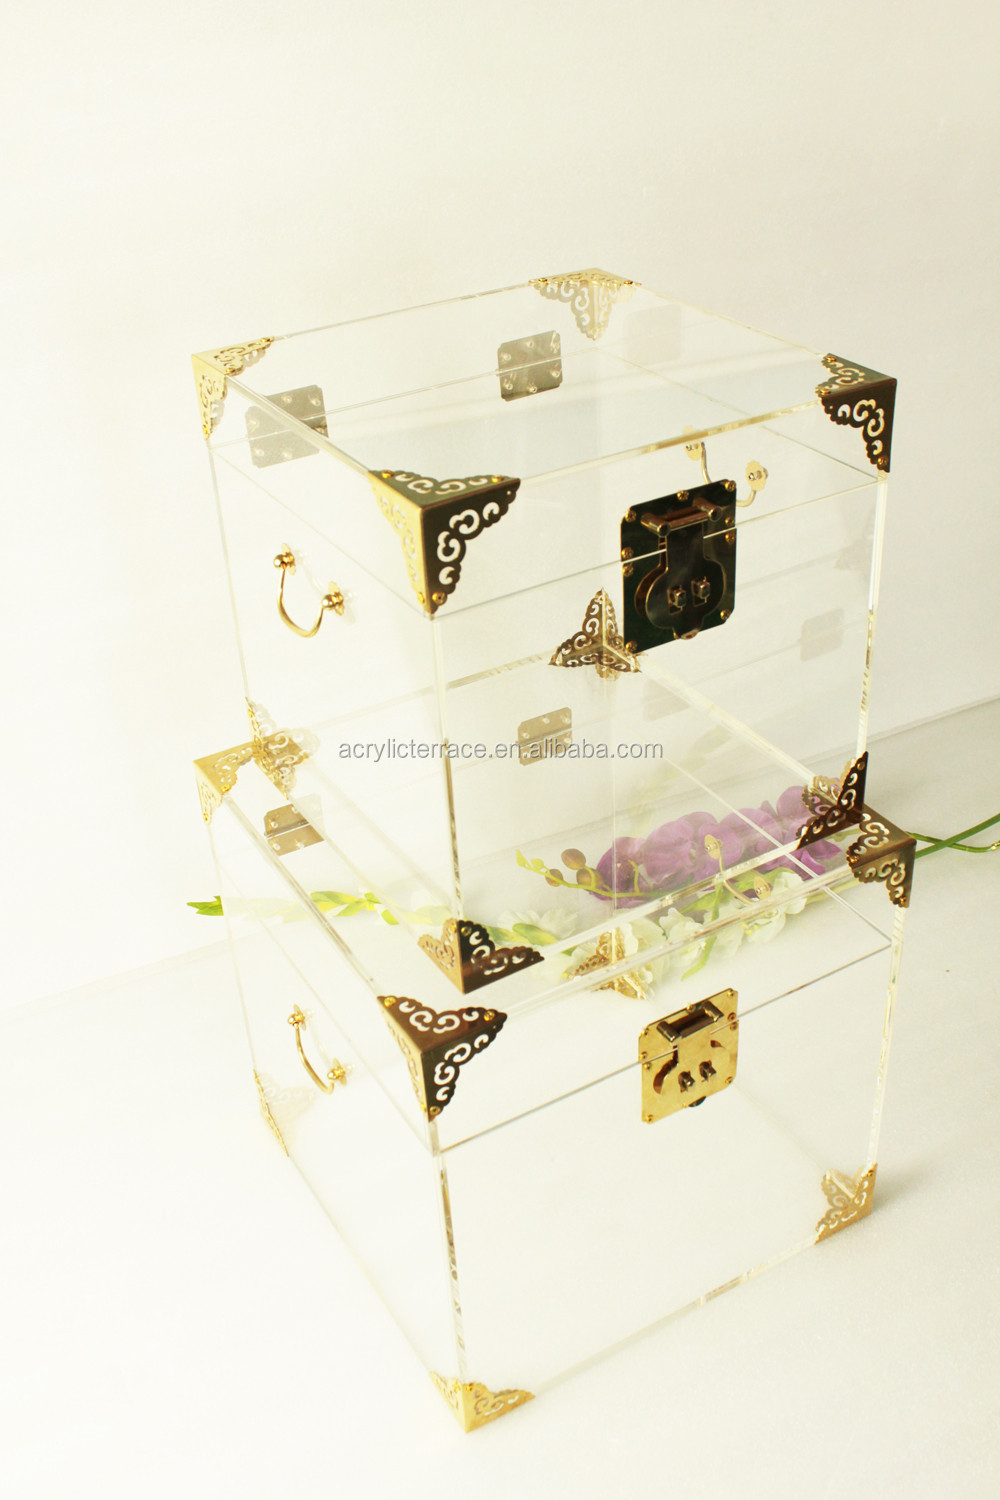 Crystal Clear Acrylic Craft Vintage Storage Trunks With Copper Protectors